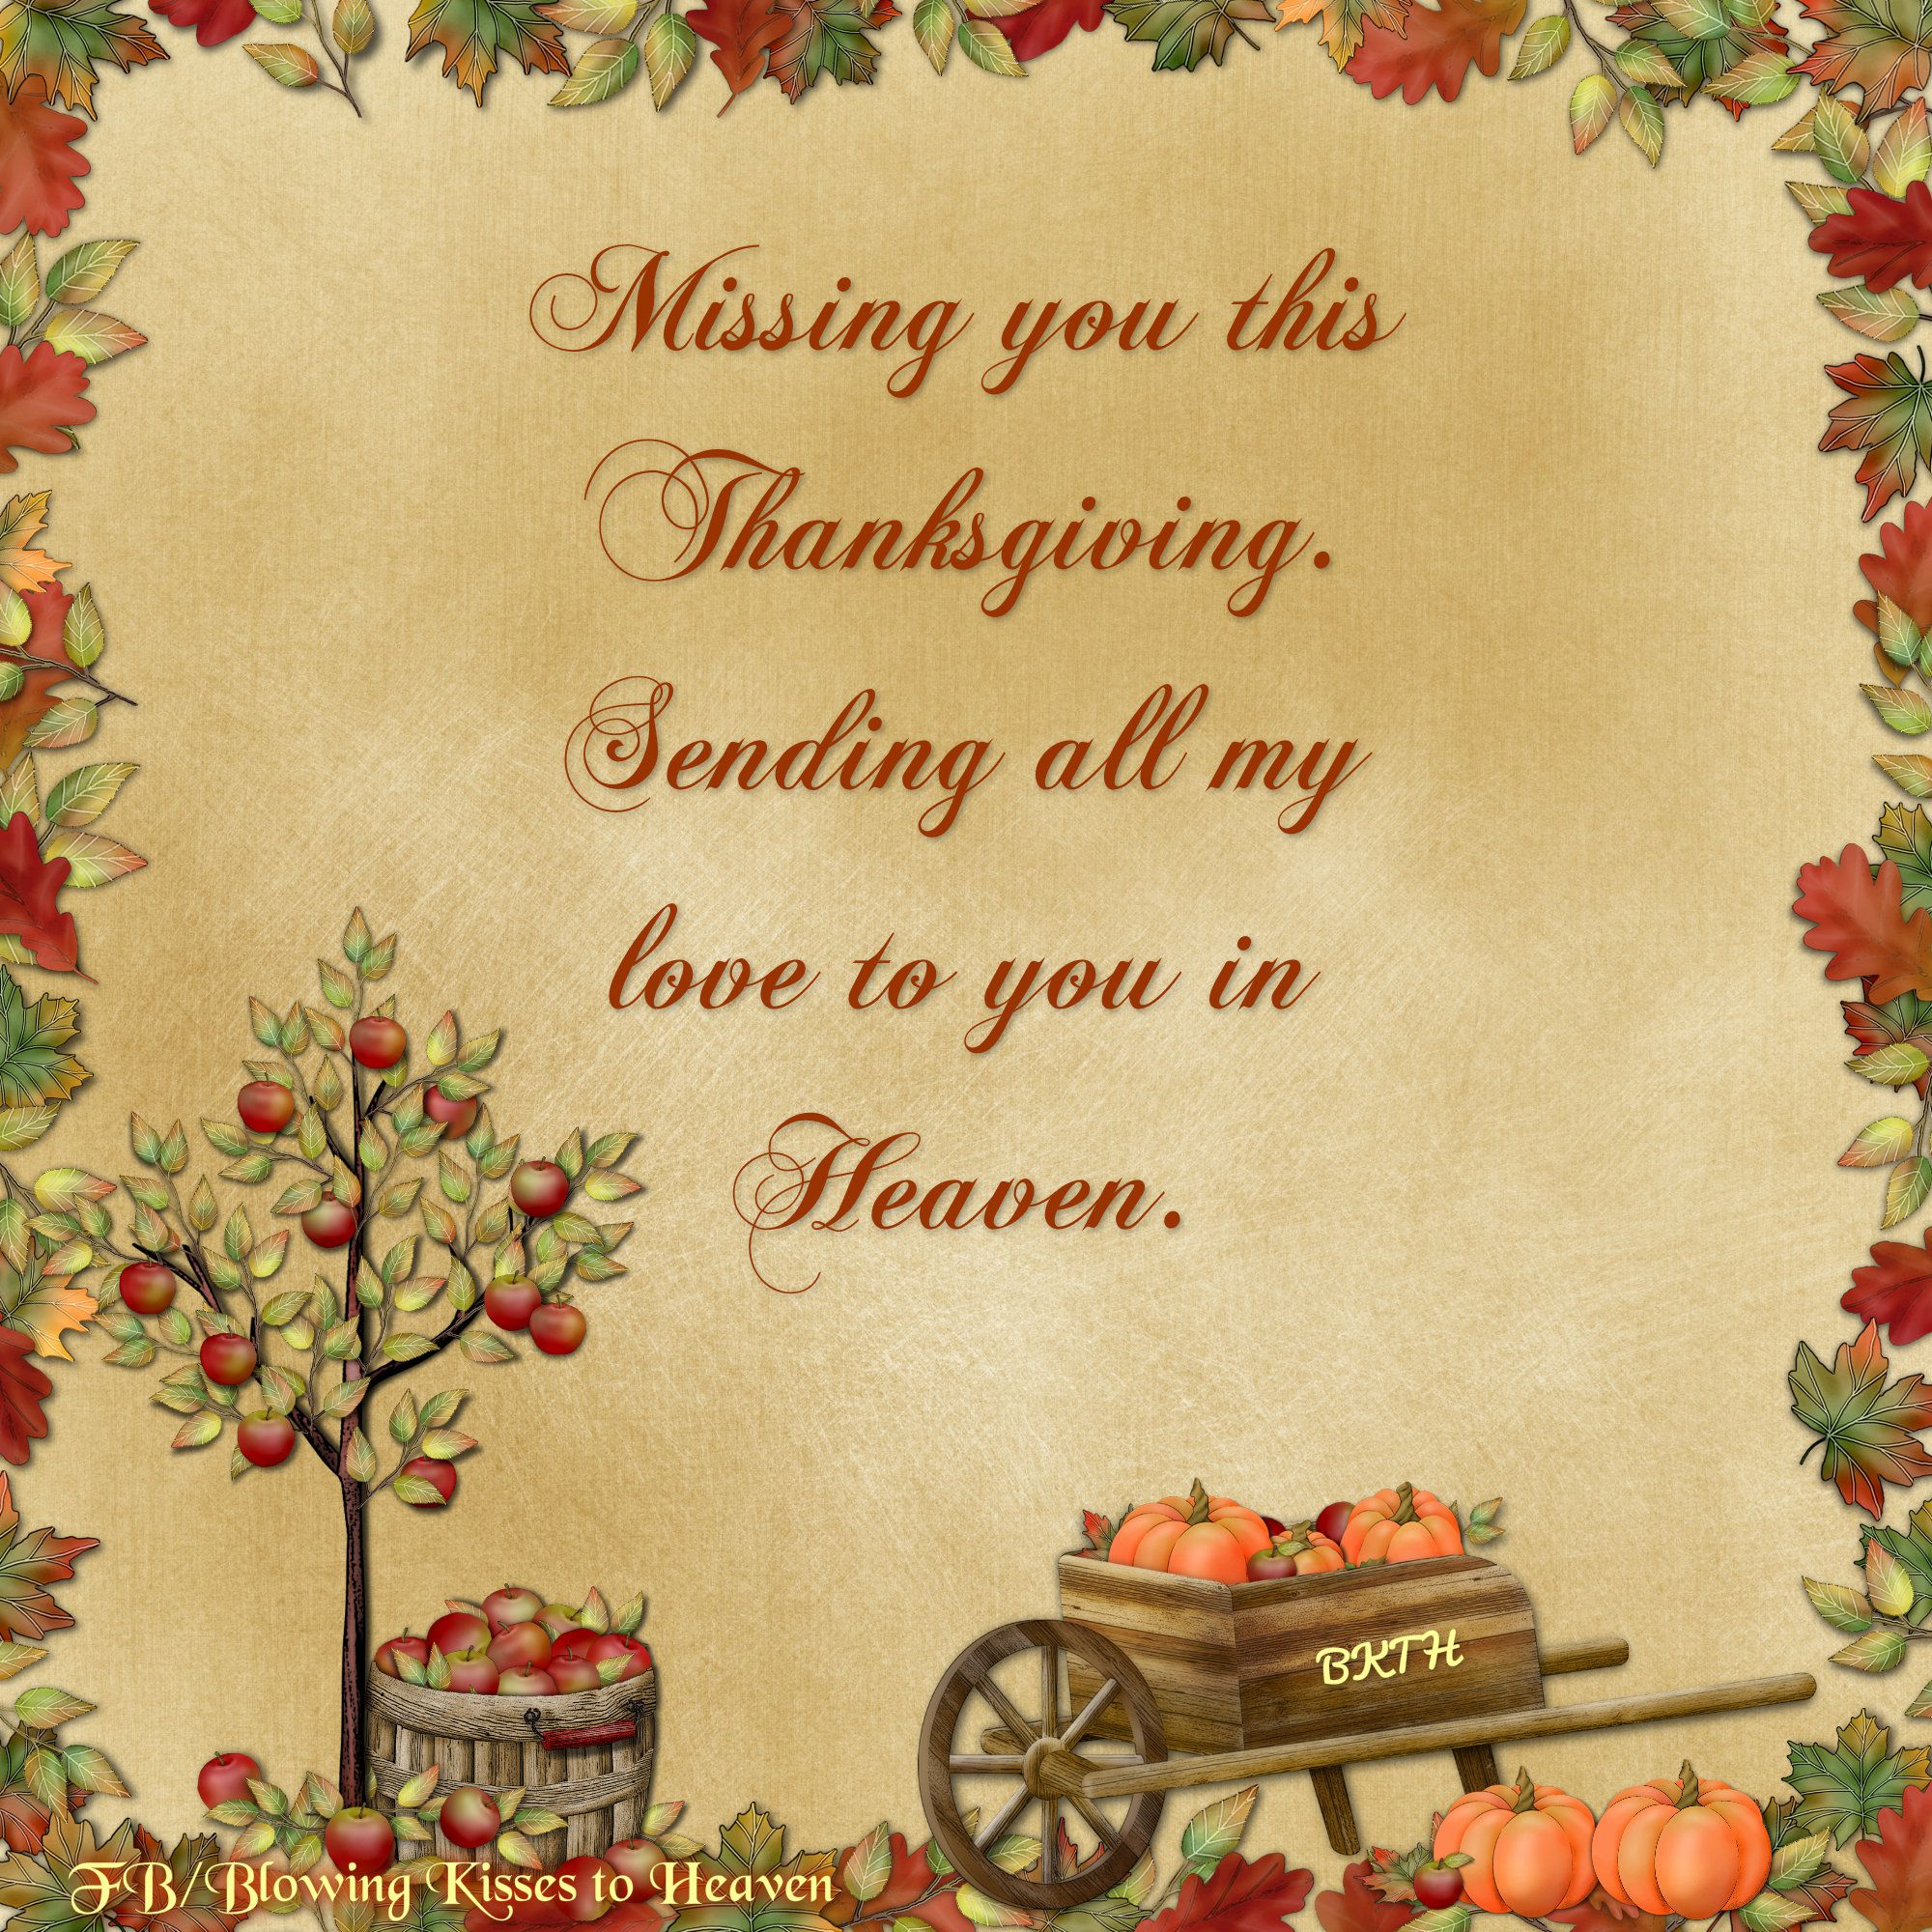 Missing You This Thanksgiving